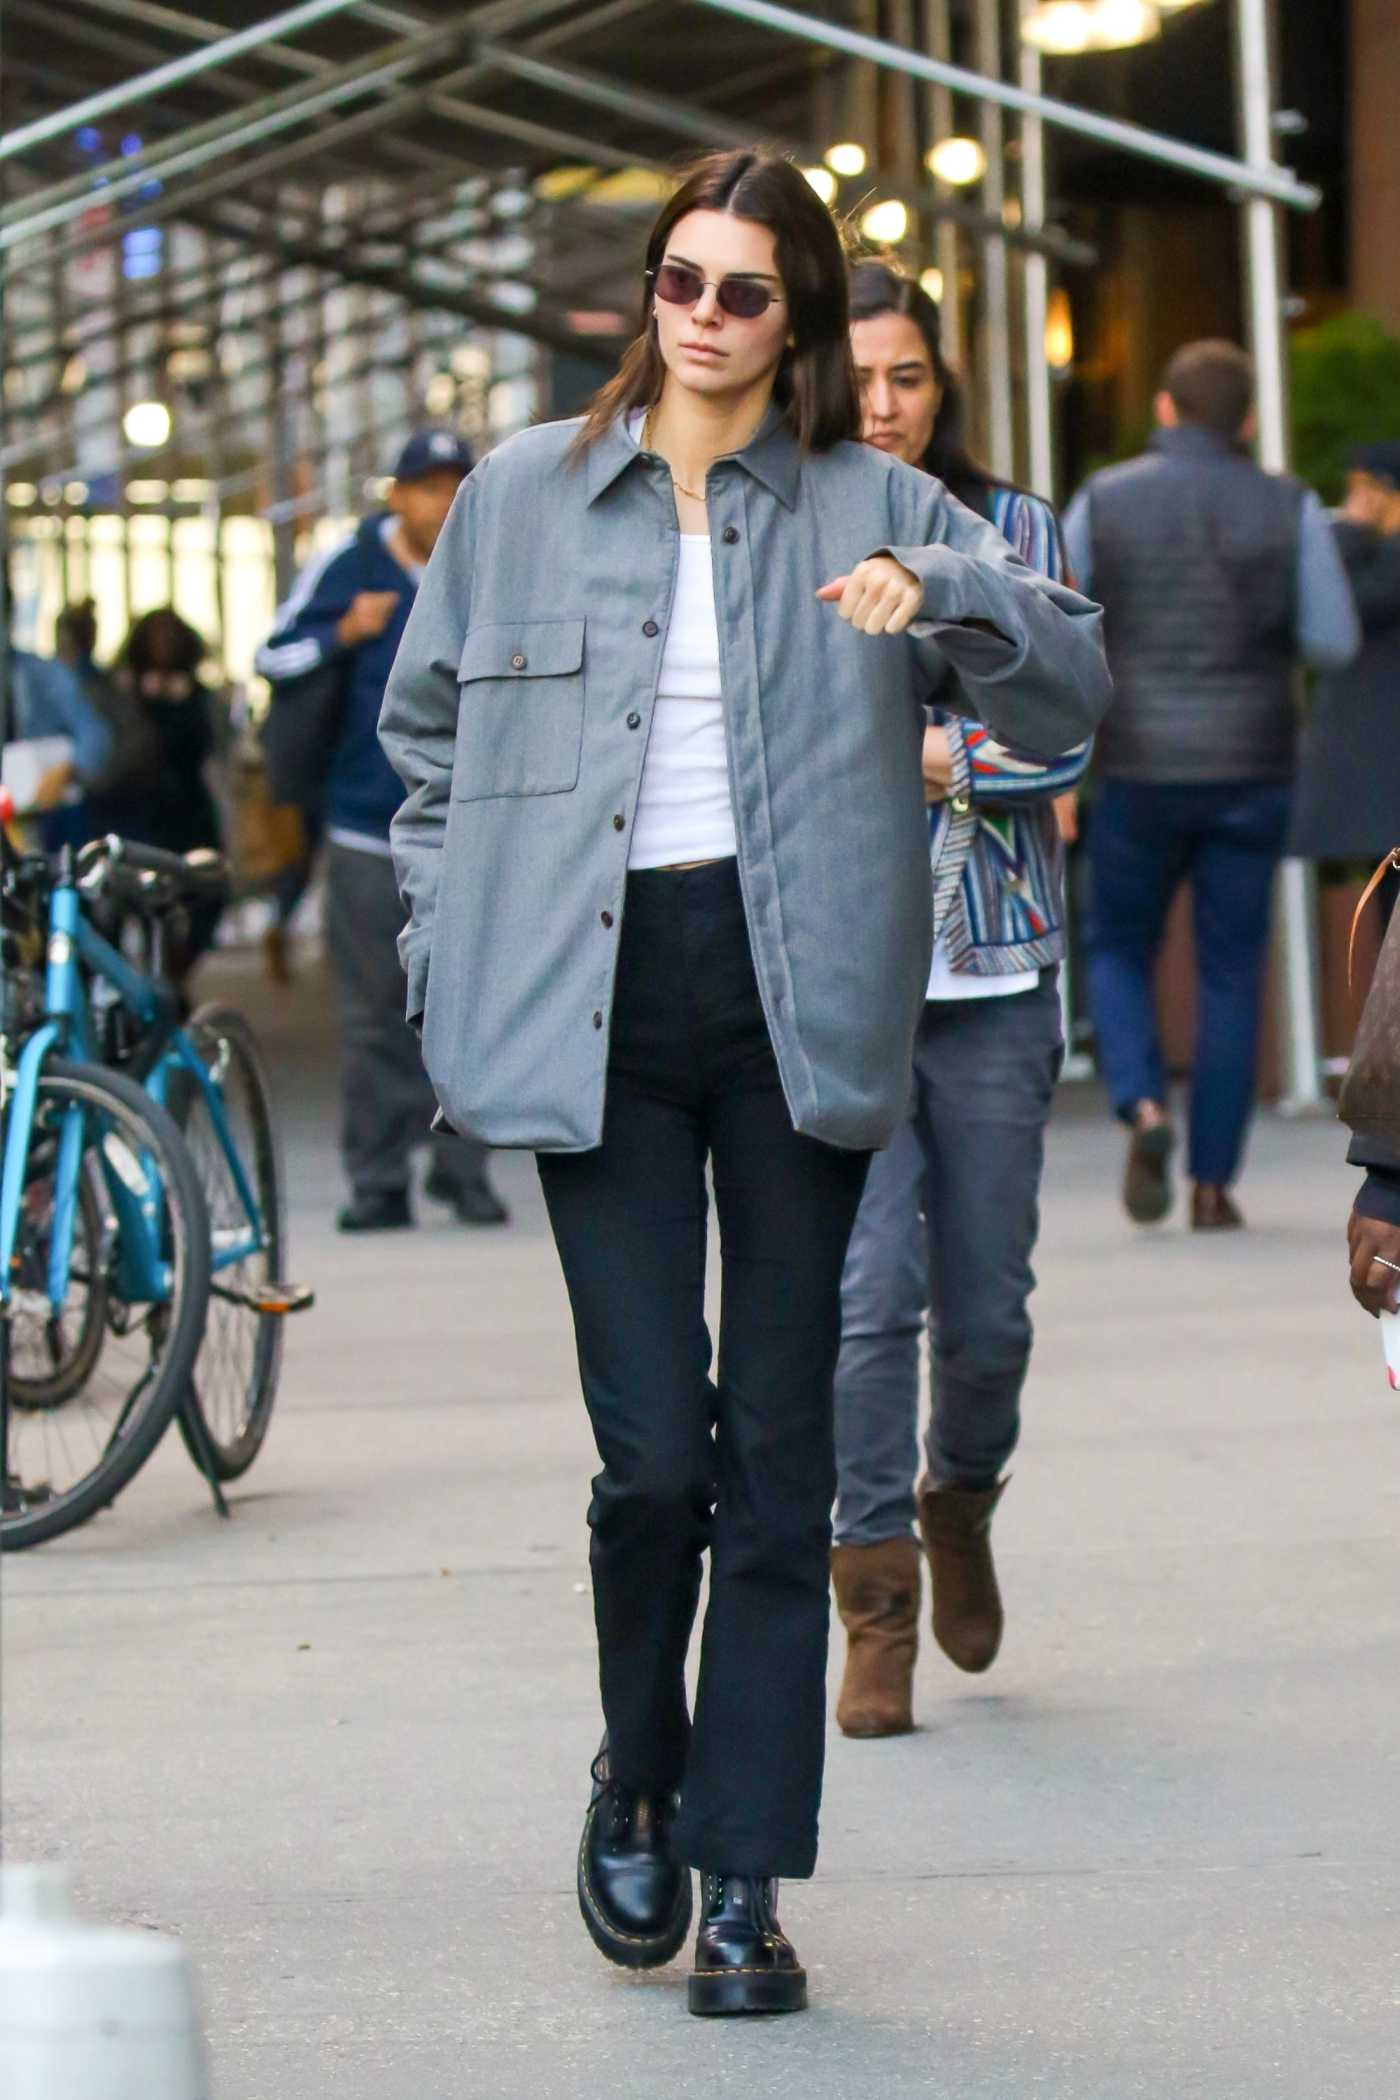 Kendall Jenner in a Gray Jacket Was Seen Out in New York 10/18/2019